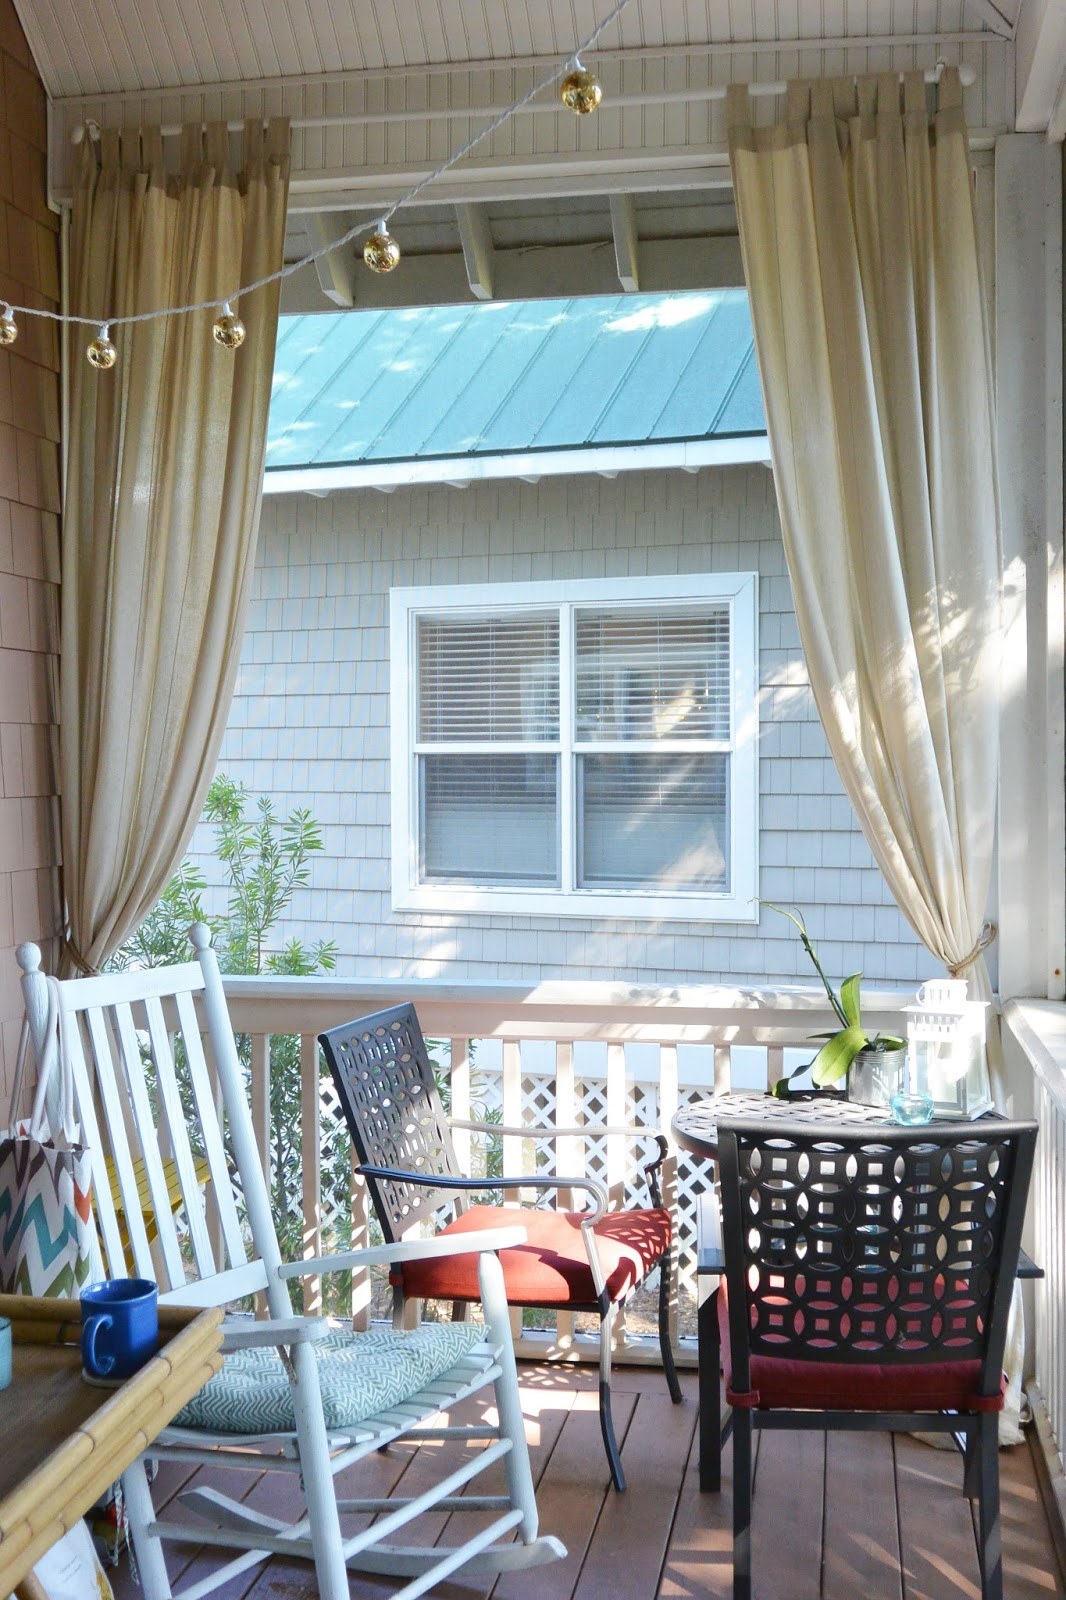 Outdoor Curtains And Diy Rope Curtain Tie Backs Stripes And Whimsy